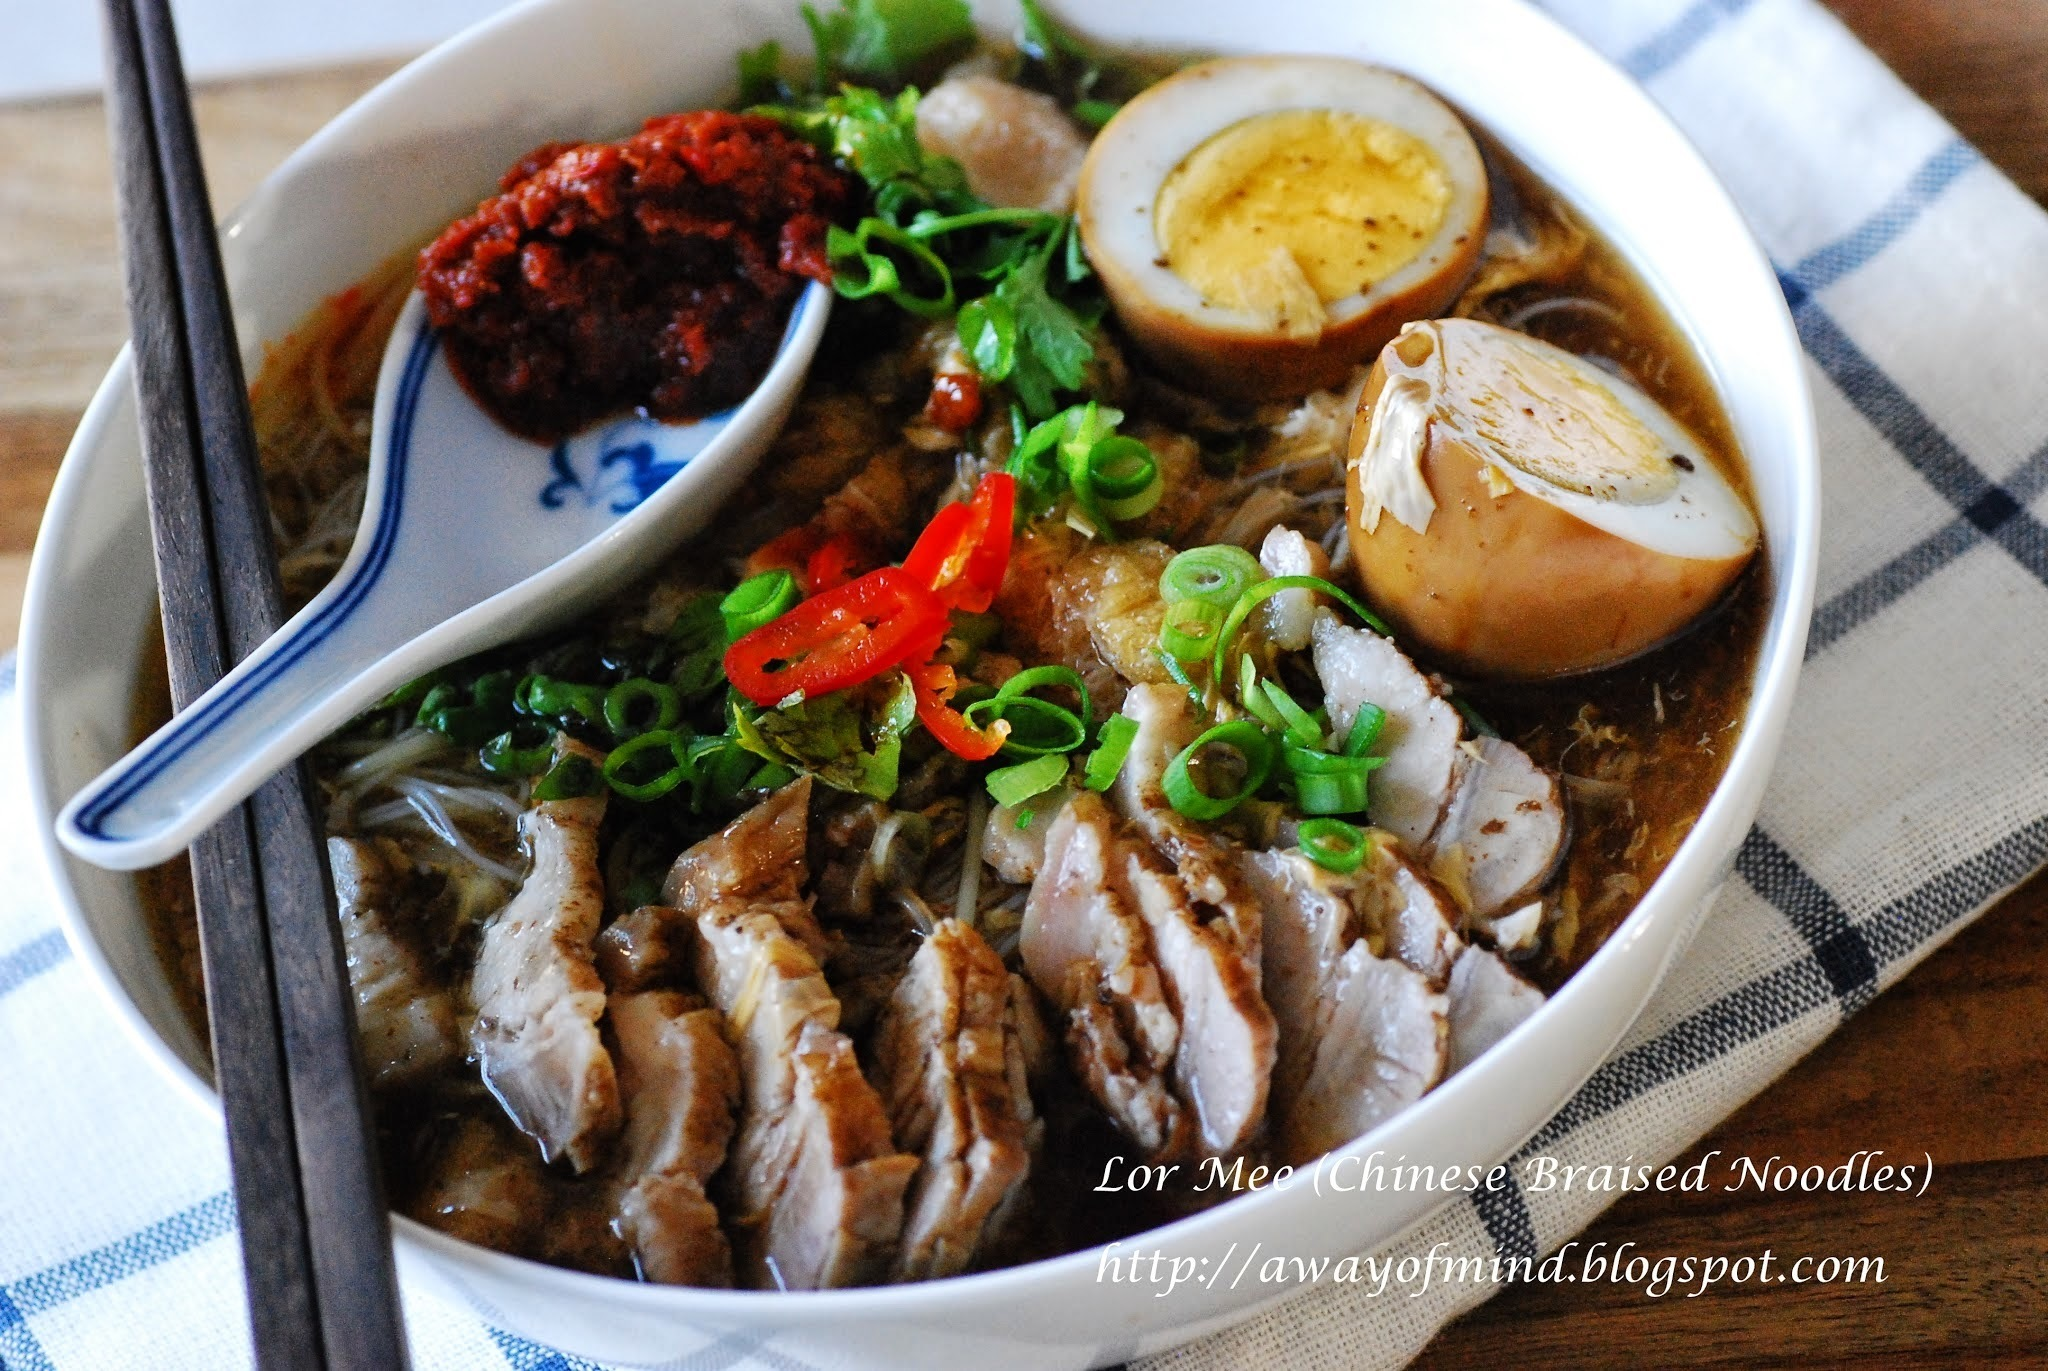 Lor Mee in Balsamic Vinegar (Chinese Braised Noodles) 卤面